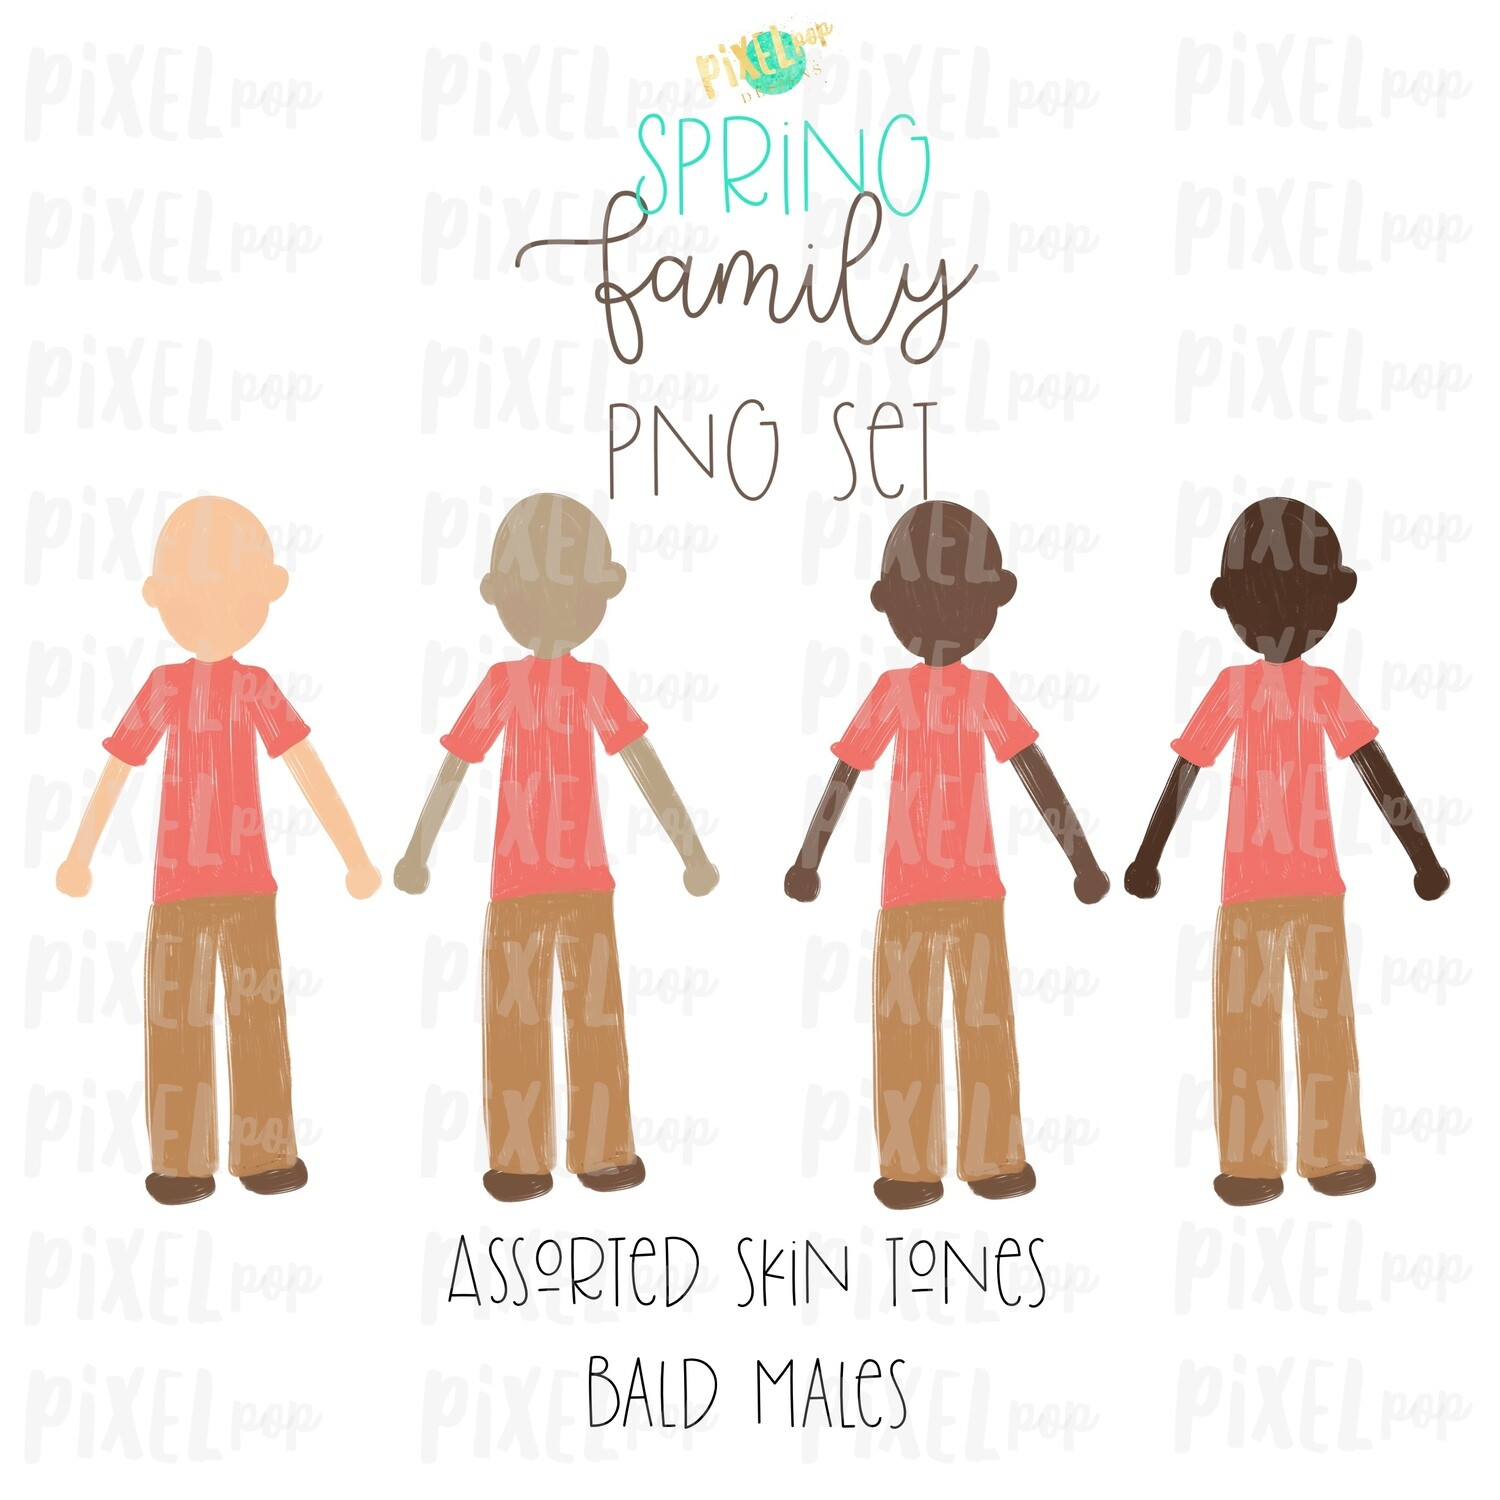 Assorted SPRING Bald Males Stick People Figure Family Members Set PNG Sublimation | Family Art | Family Portrait Images | Digital Download